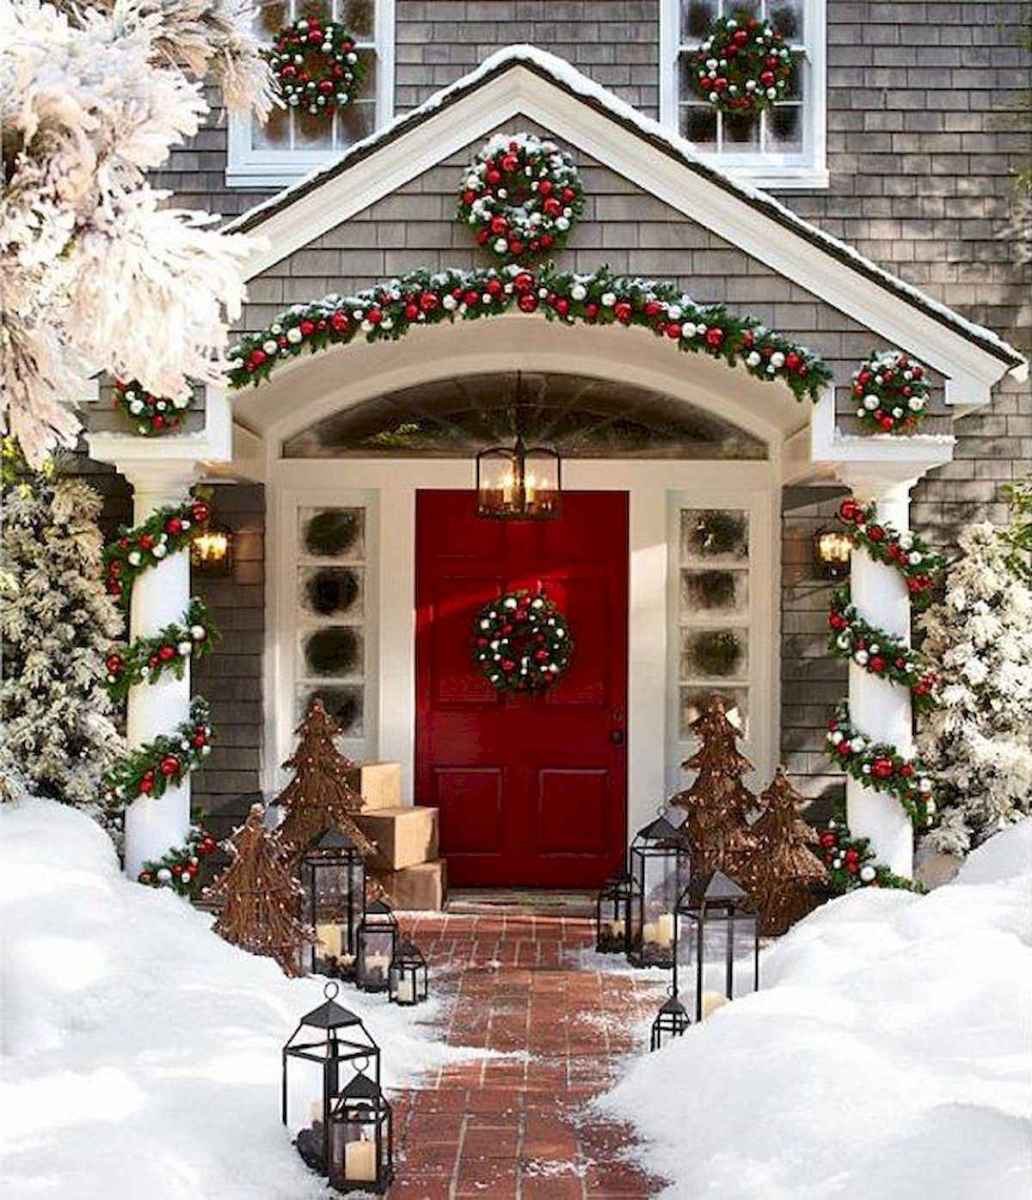 50 stunning christmas front porch decor ideas and design (28)